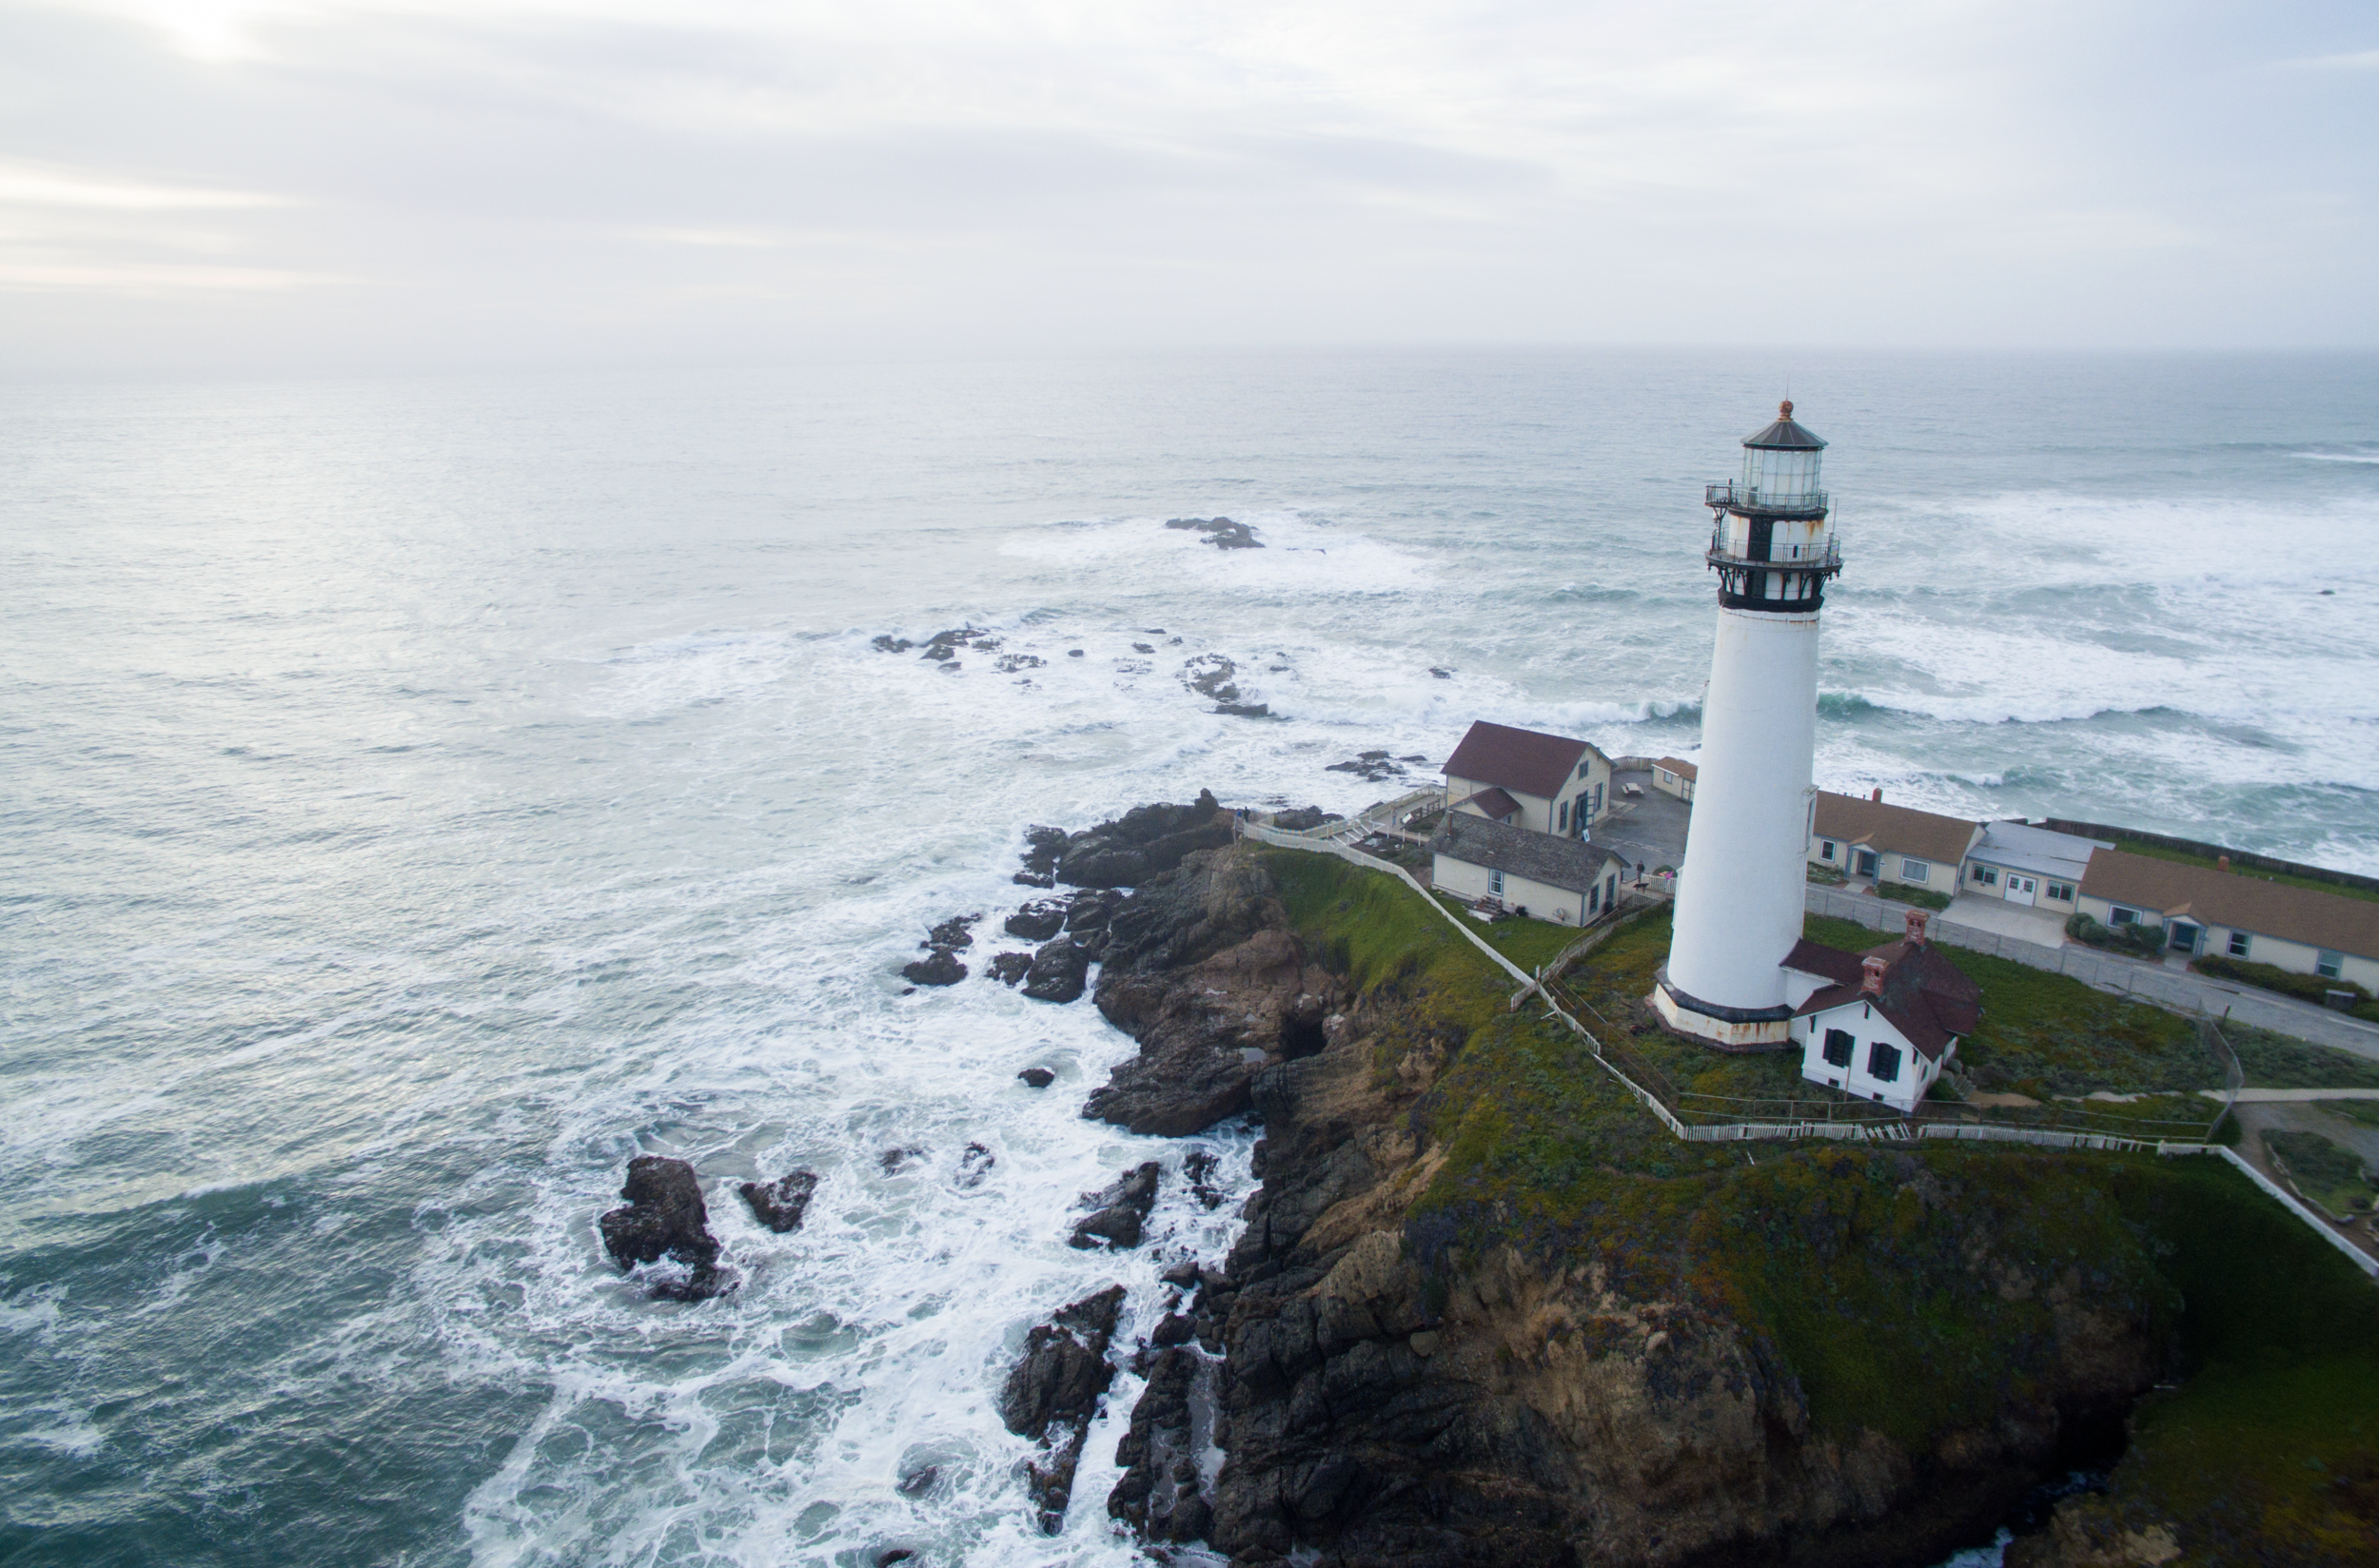 Photo taken from the west side of Pigeon Point Light House. Copyright Hoang M Nguyen - Hobo.Life